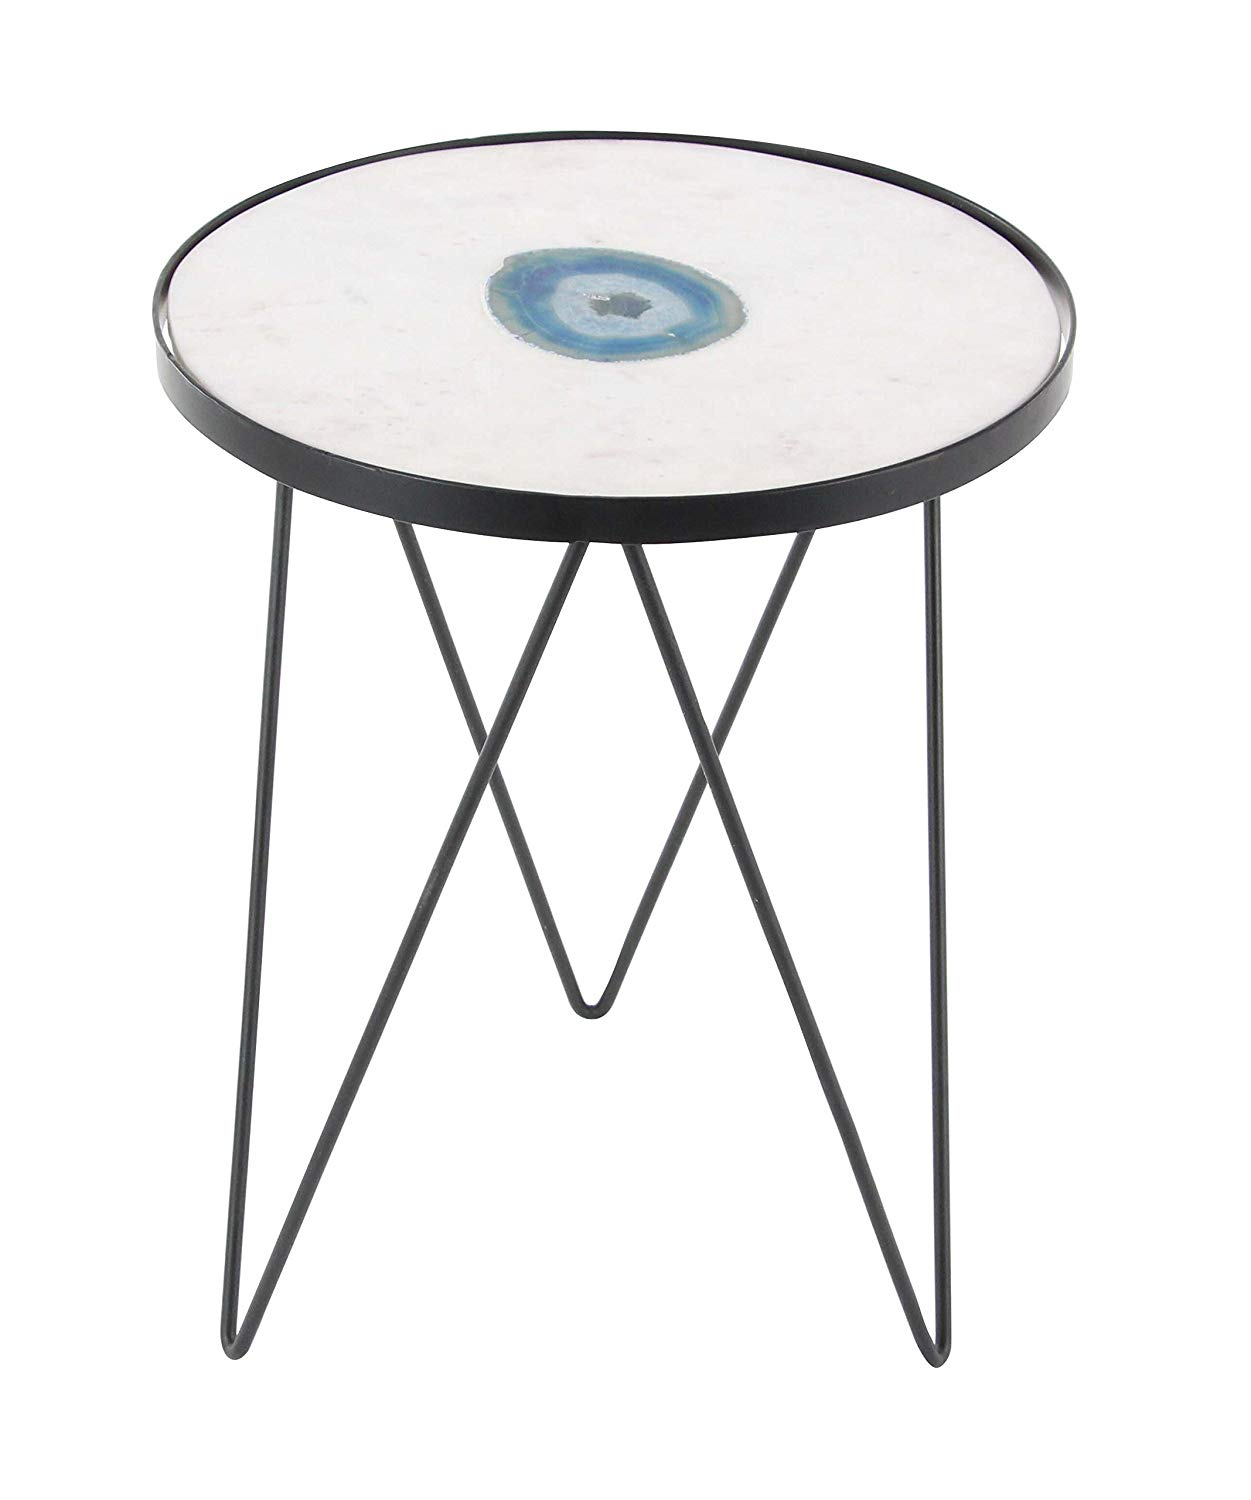 charming white marble and metal round accent table small for faux tablecloth pedestal wooden unfinished wood ideas covers decorating threshold side full size bistro outdoor